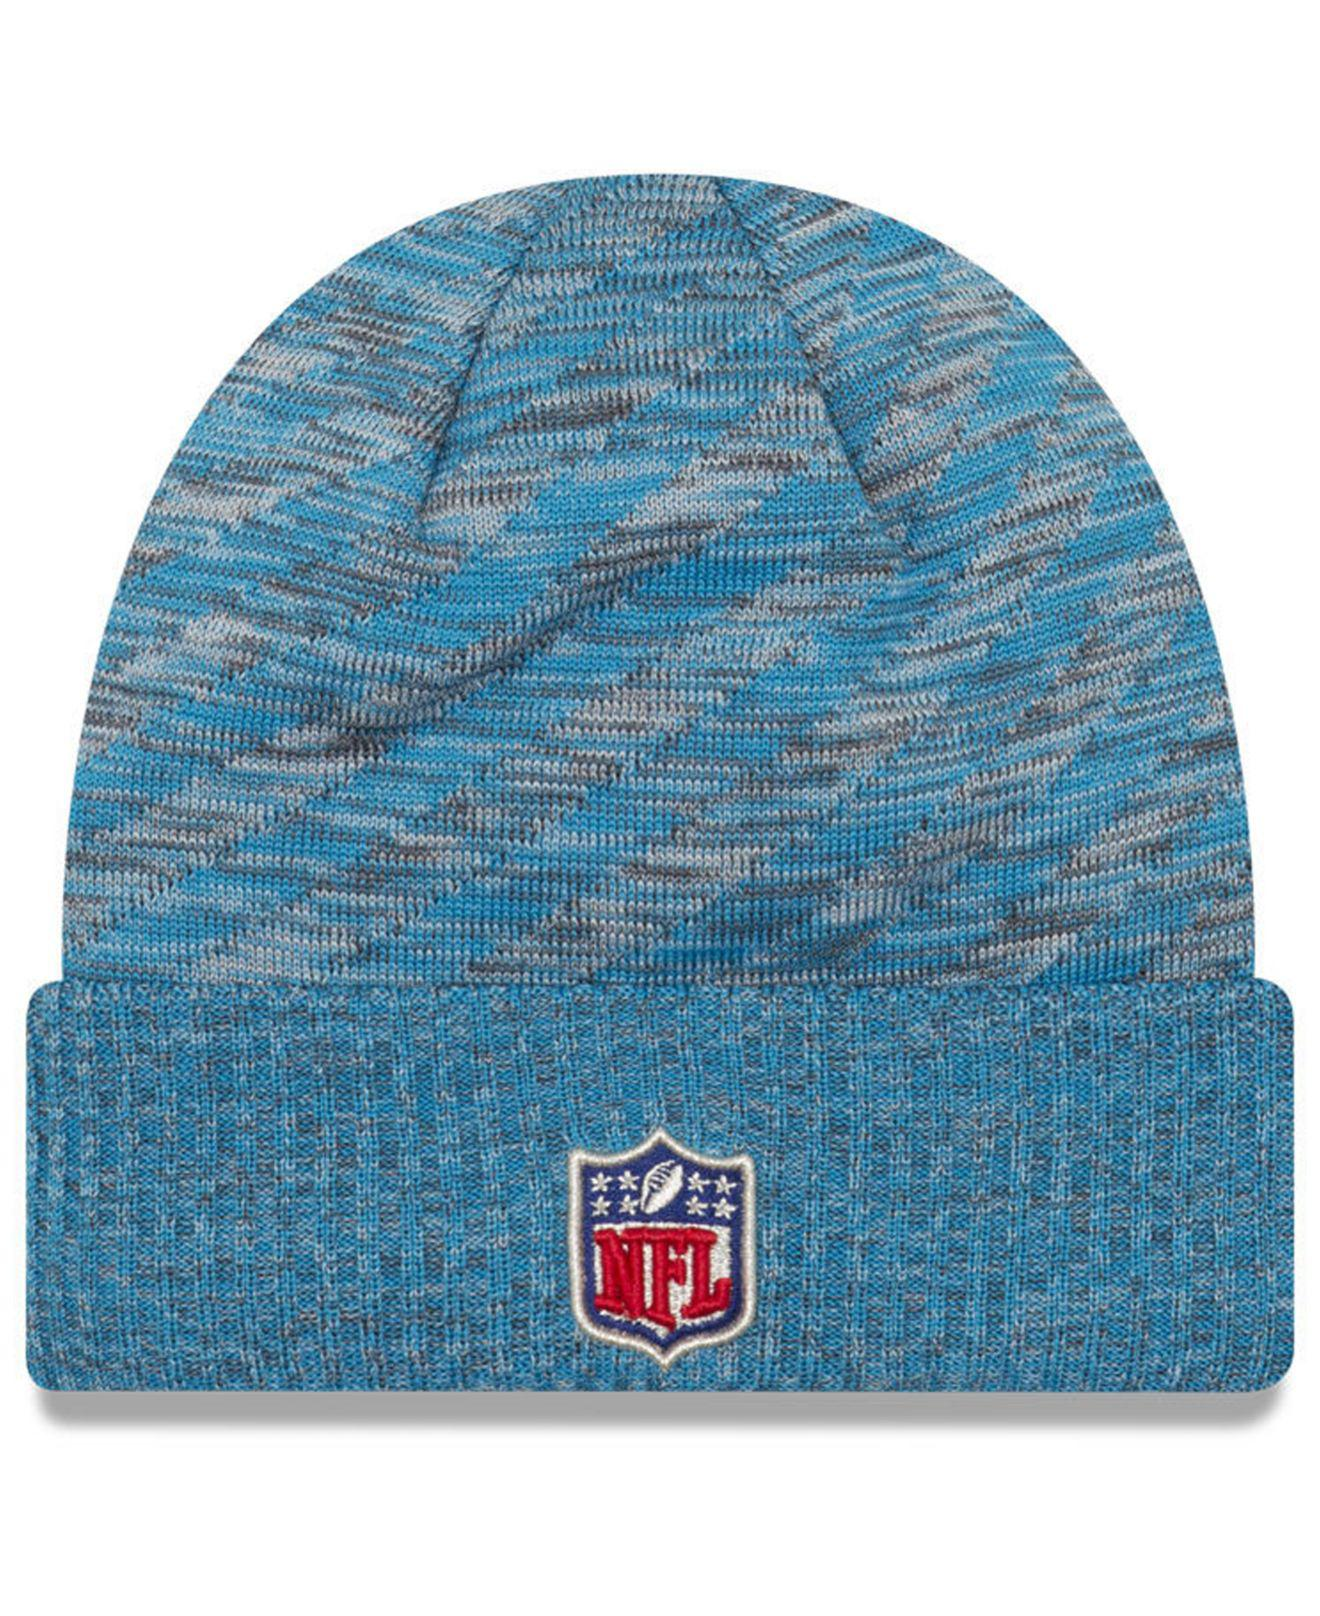 a1102e12c Lyst - Ktz Carolina Panthers Touch Down Knit Hat in Blue for Men